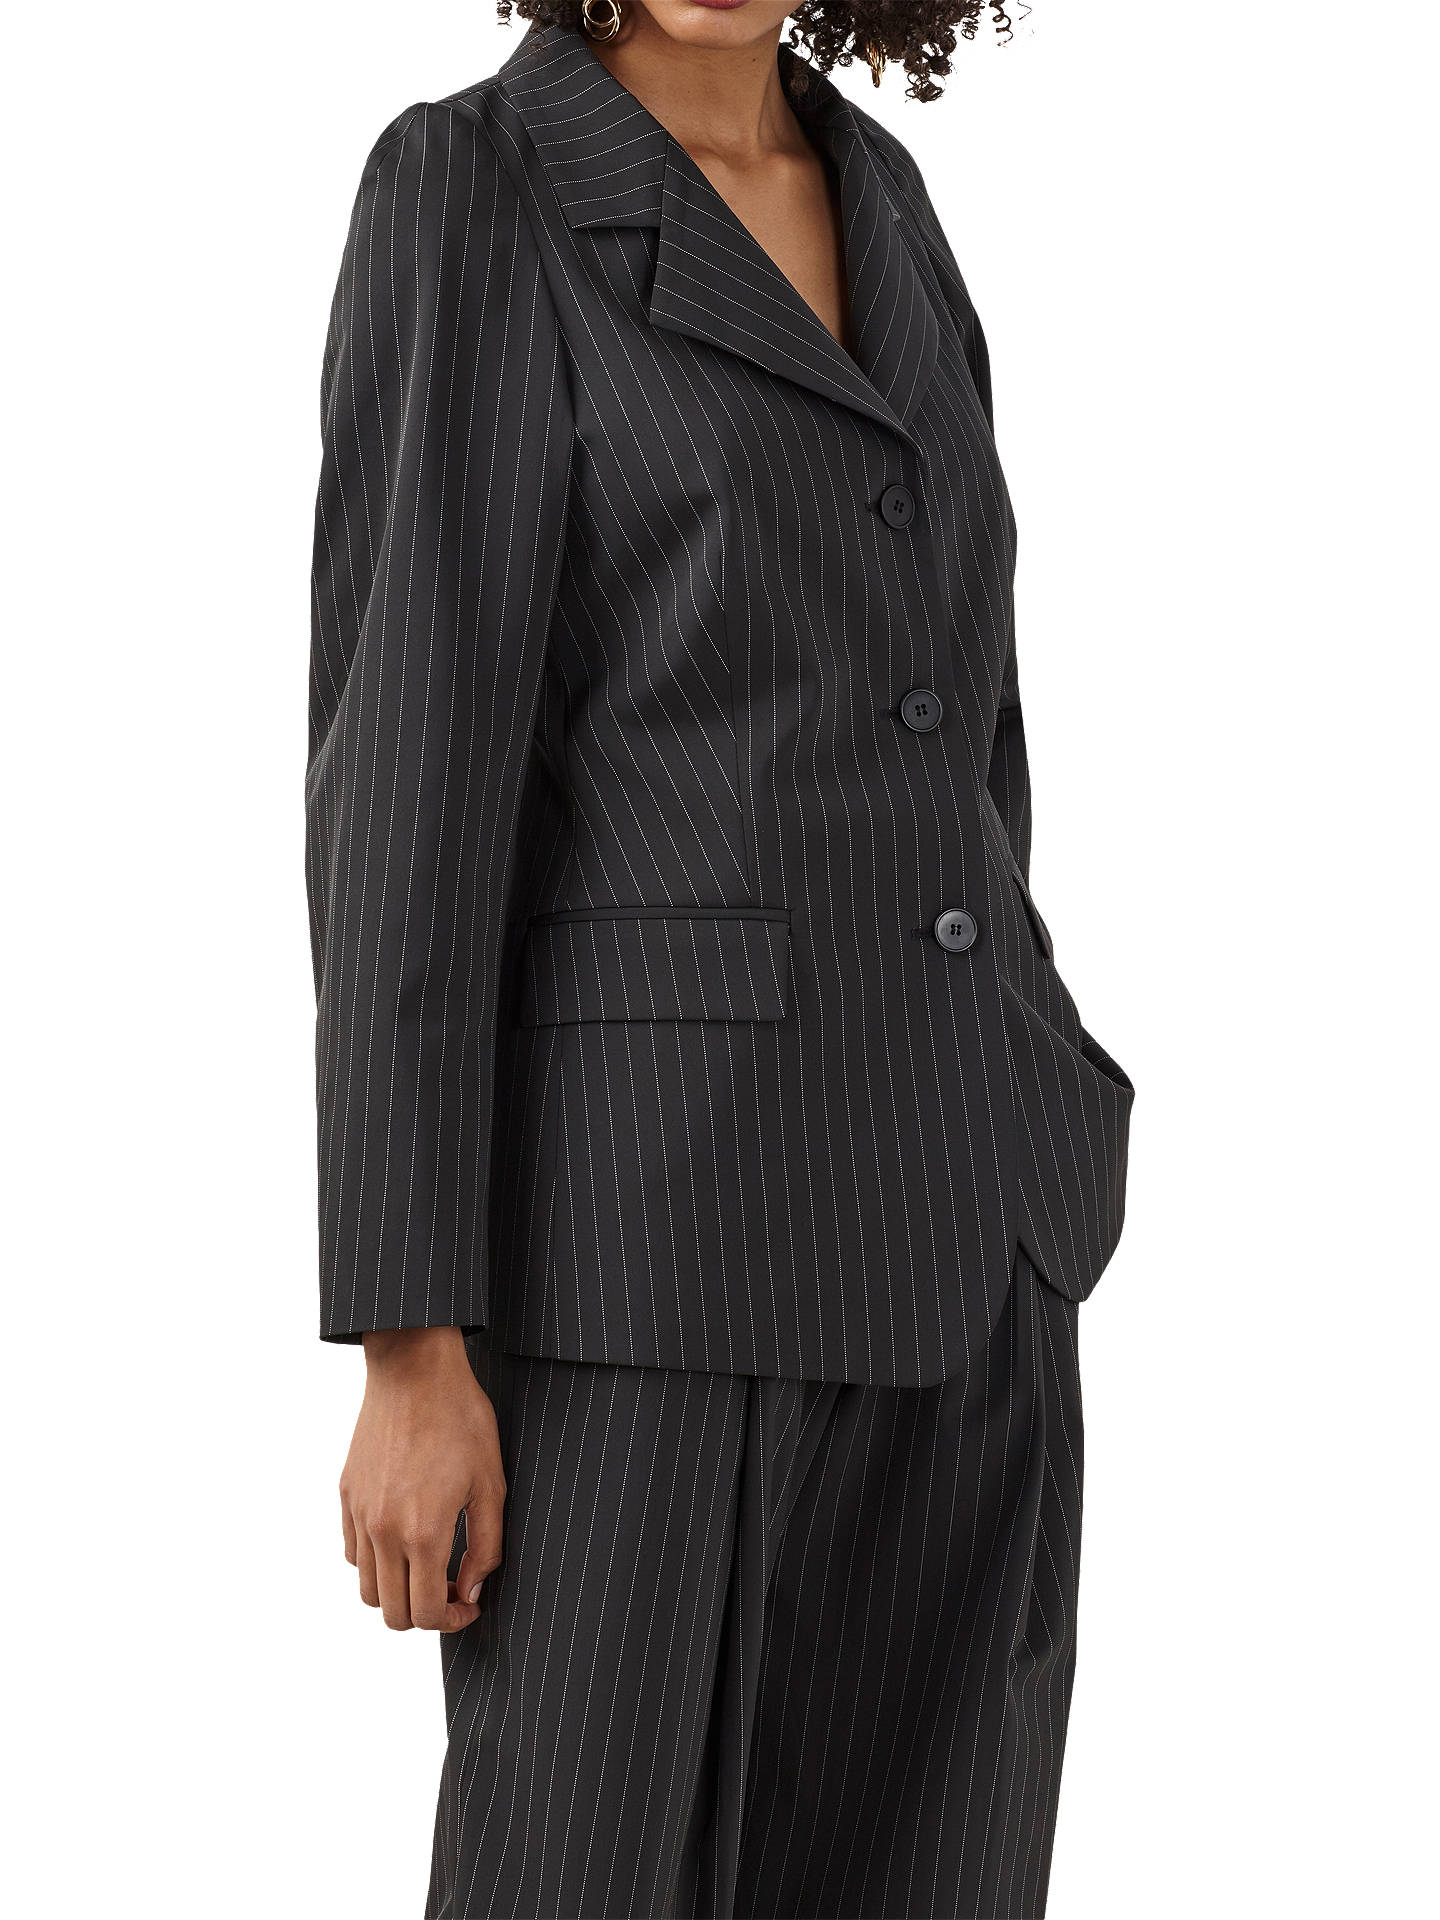 BuyFinery Cardington Pinstripe Jacket, Black/White, 8 Online at johnlewis.com